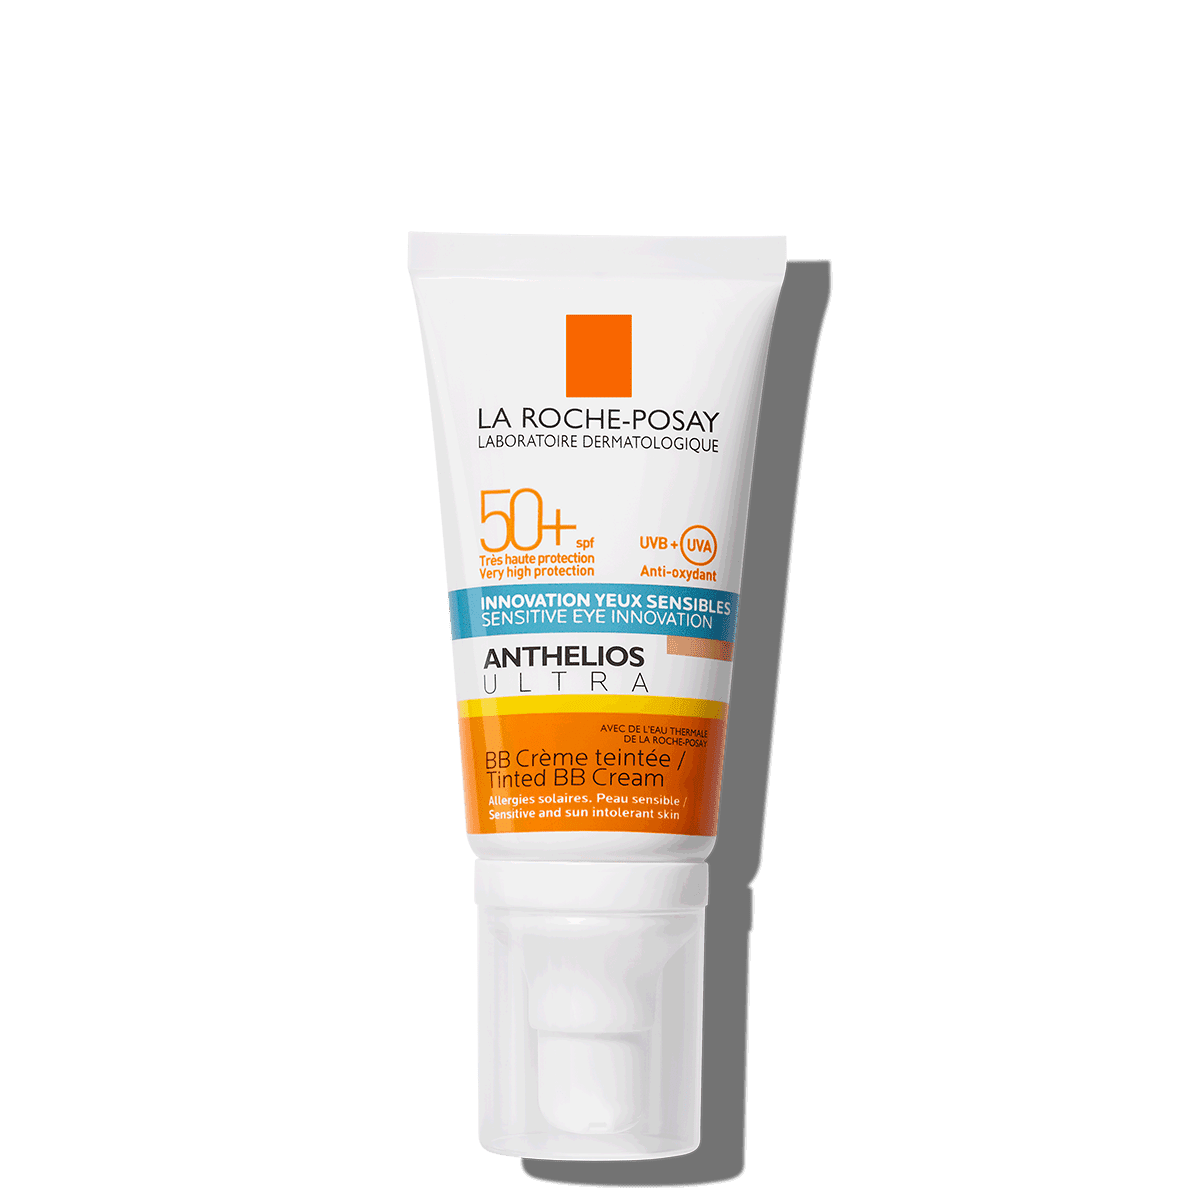 La Roche Posay ProductPage Sun Anthelios Ultra Tinted Bb Cream Spf50 5